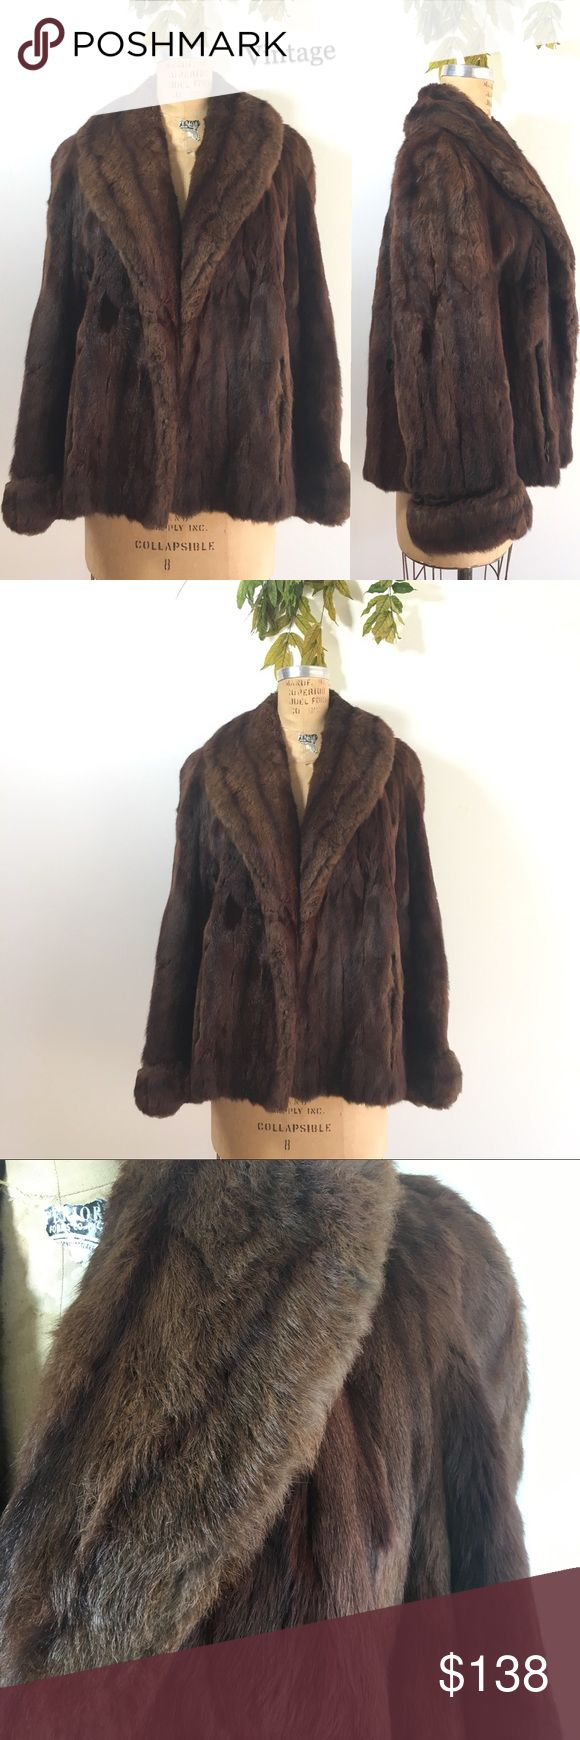 Vintage Fur Jacket All the MCM glamour and warmth of real fur yet a bit more ethical as vintage- this one was made exclusively for Stella. Fur is in very nice condition- amazingly soft-lining needs to be hand stitched in a few places but not torn. Pockets and the union /fair labor label. I am not an expert just a vintage lover so not identifying fur type. As is. Fits as size M/L.  Serious inquiries and reasonable offers welcome. Vintage Jackets & Coats